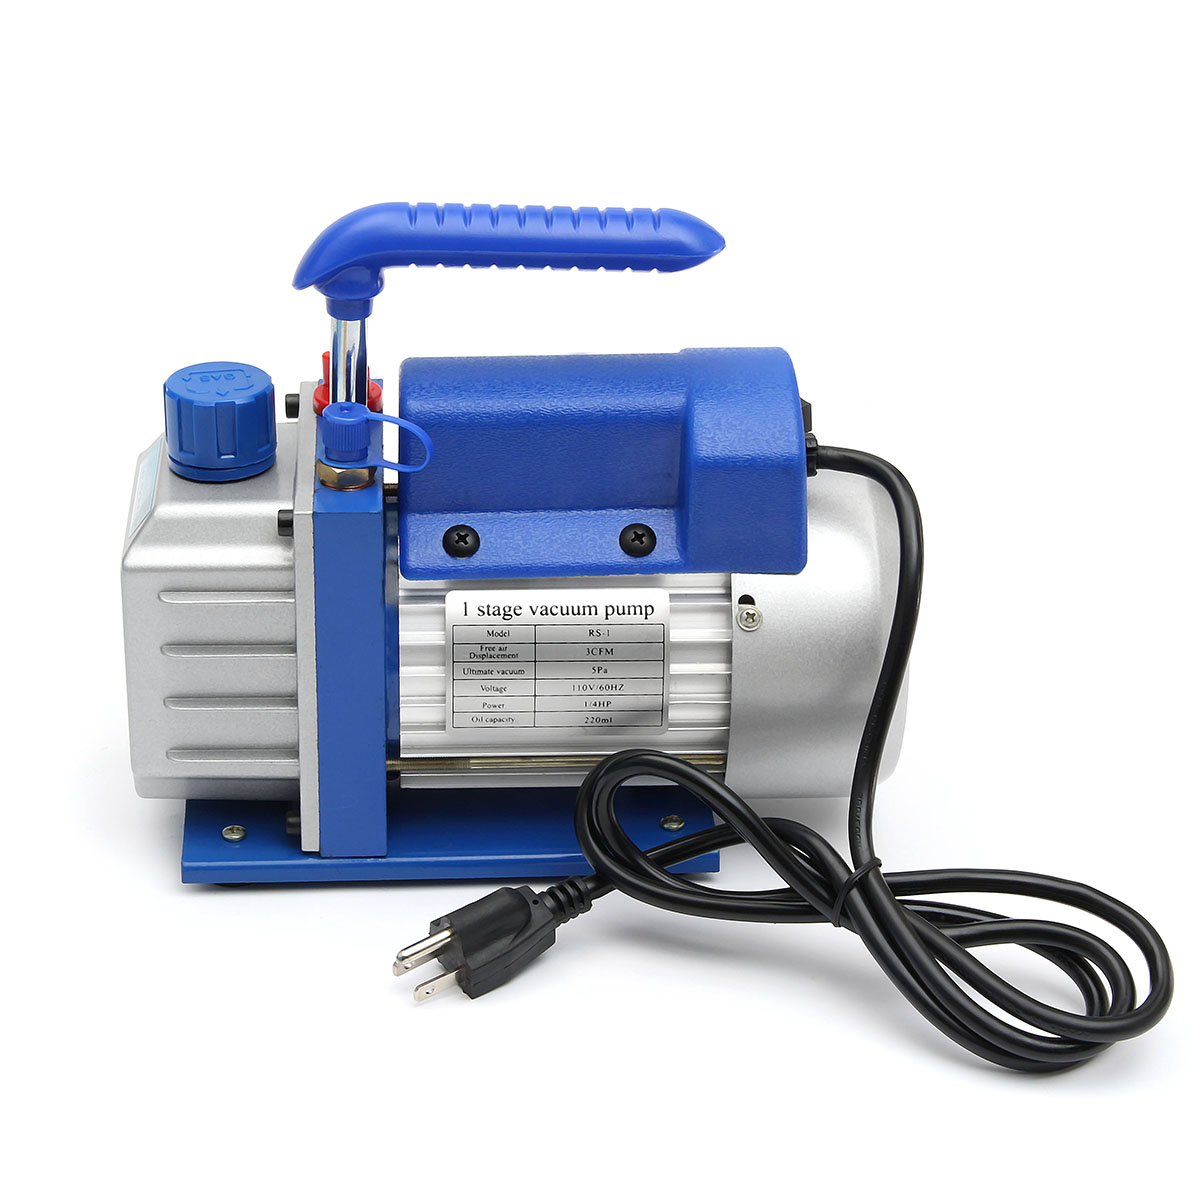 110V 180W 60HZ 3CFM Rotary Vane Low Pressure Single Stage Vacuum Pump 1/4HP Air Conditioning Tool System Refrigeration Tools double stage 2cfm hvac ac air tool refrigeration rotary vane air vacuum pump 2xz 1